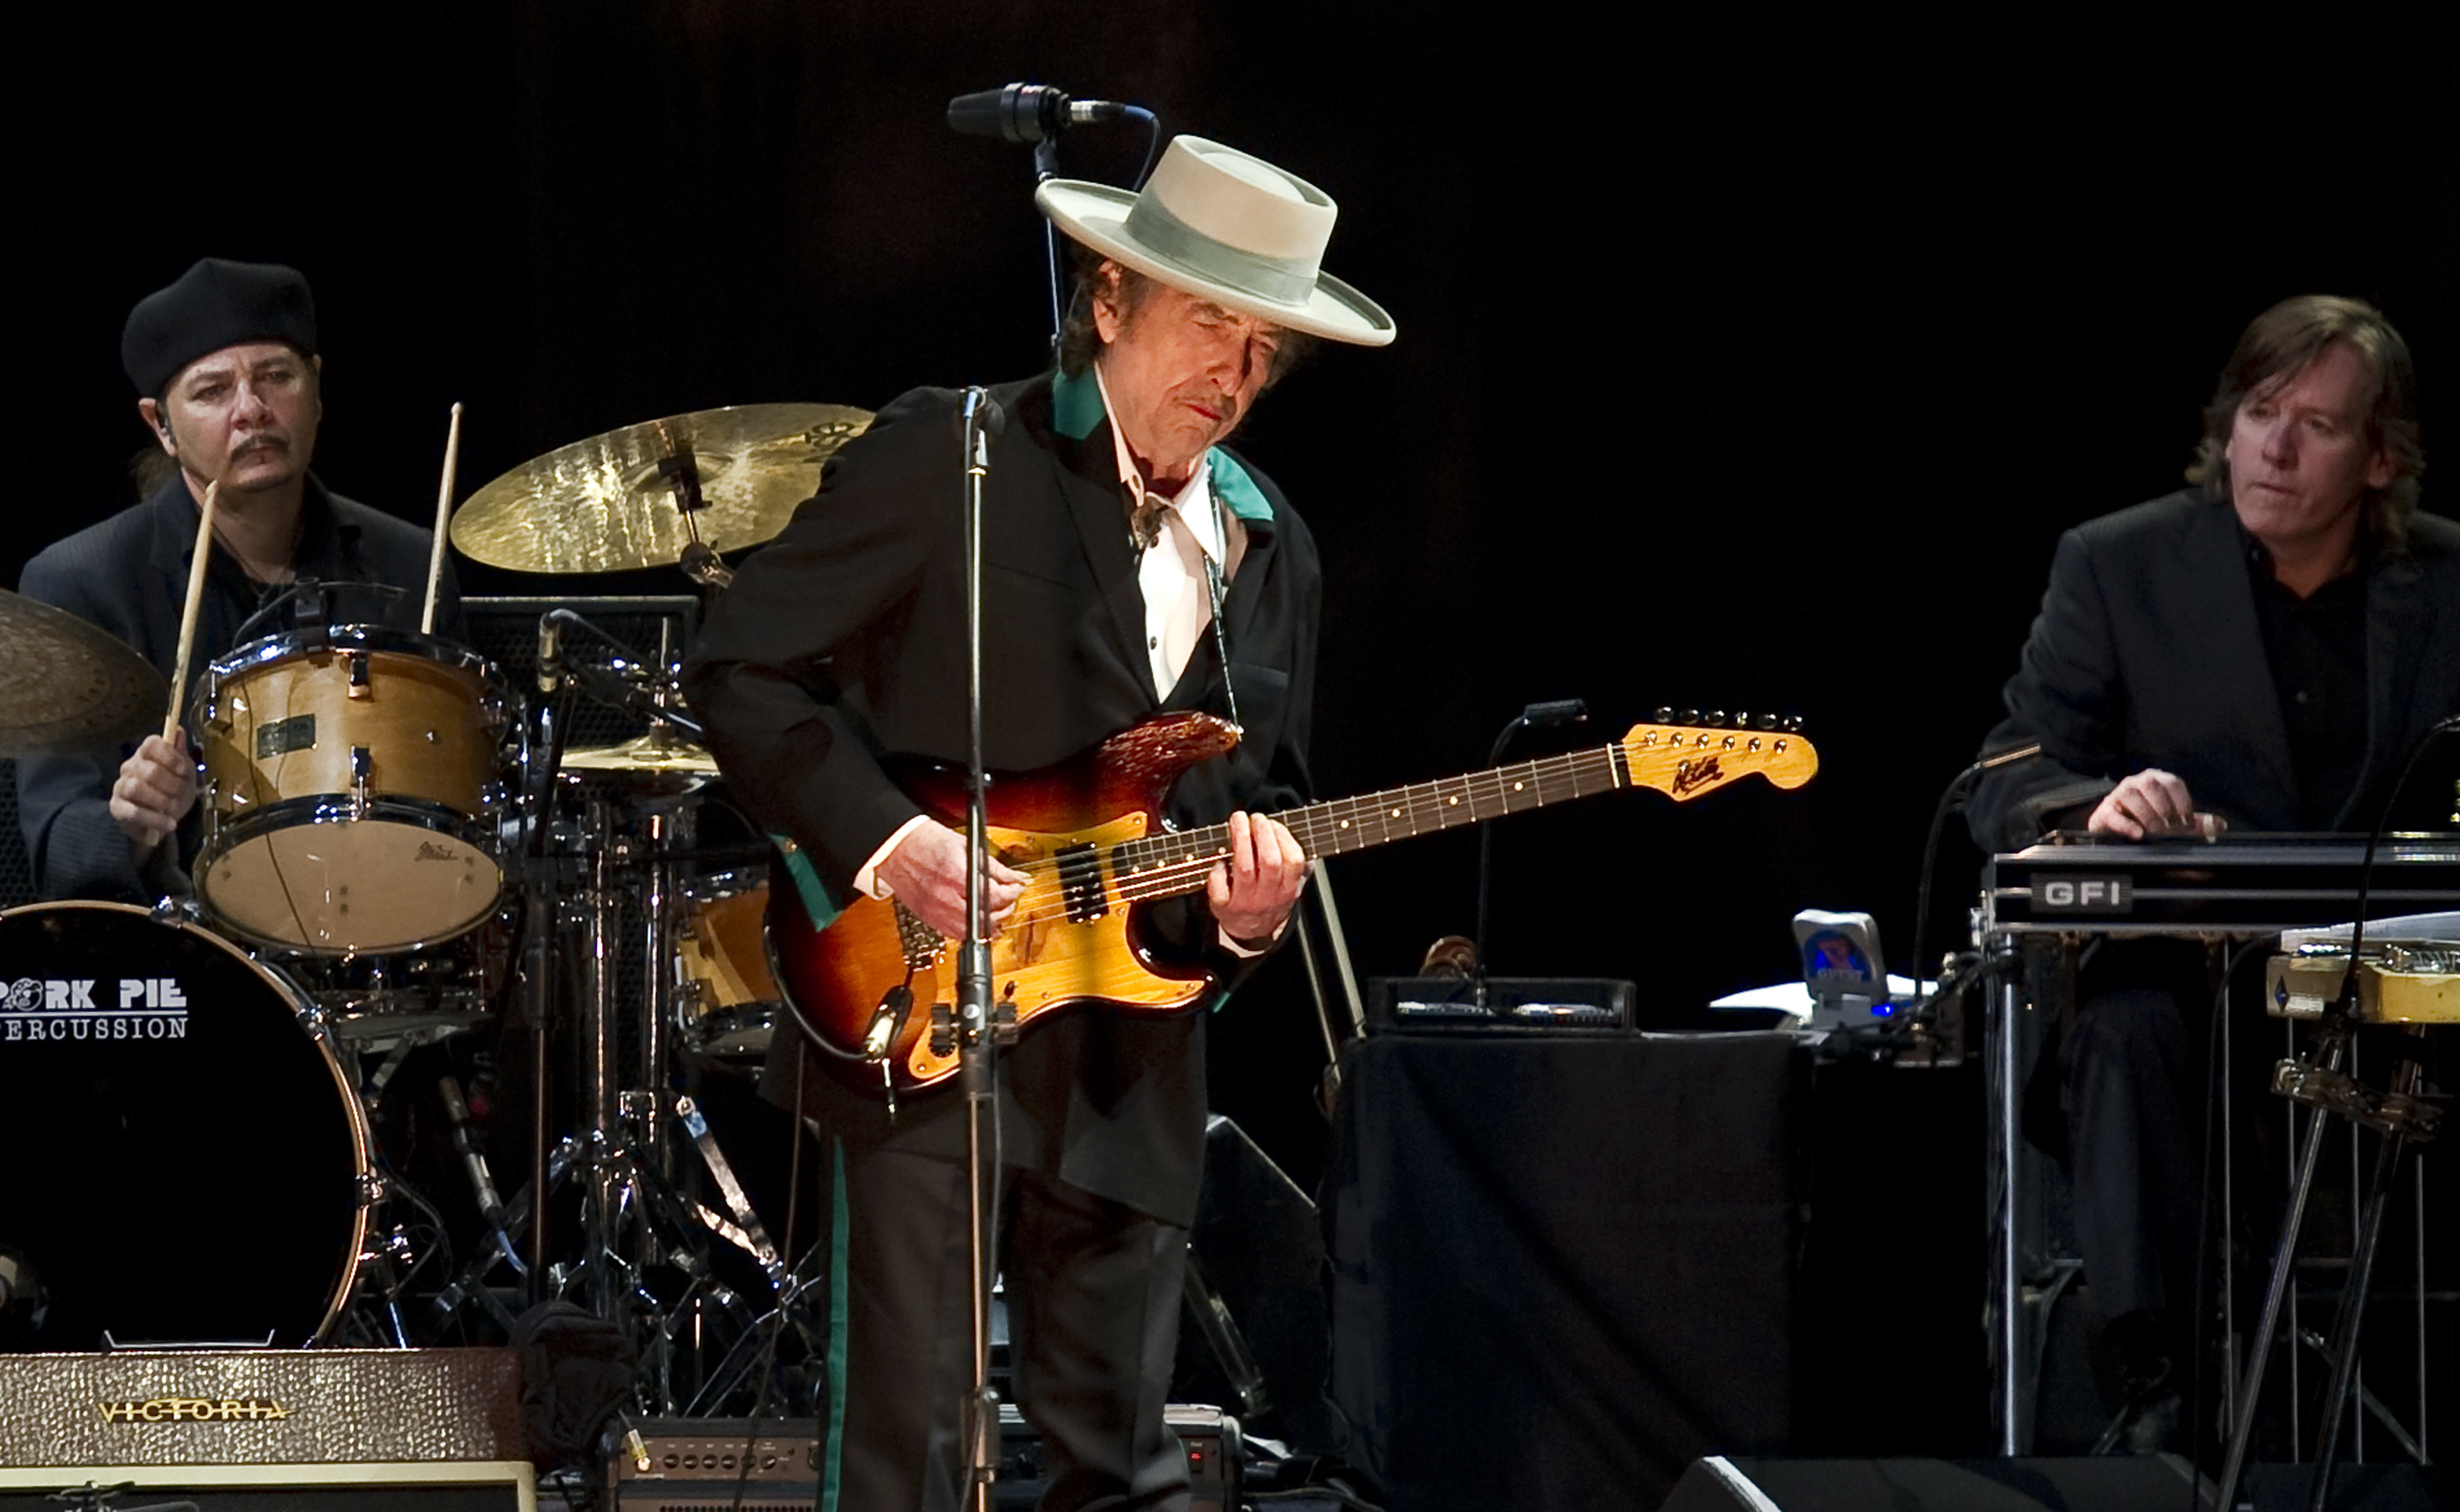 American music legend Bob Dylan (C) performs on stage during his concert in Shanghai on April 8, 2011. Counter-culture legend